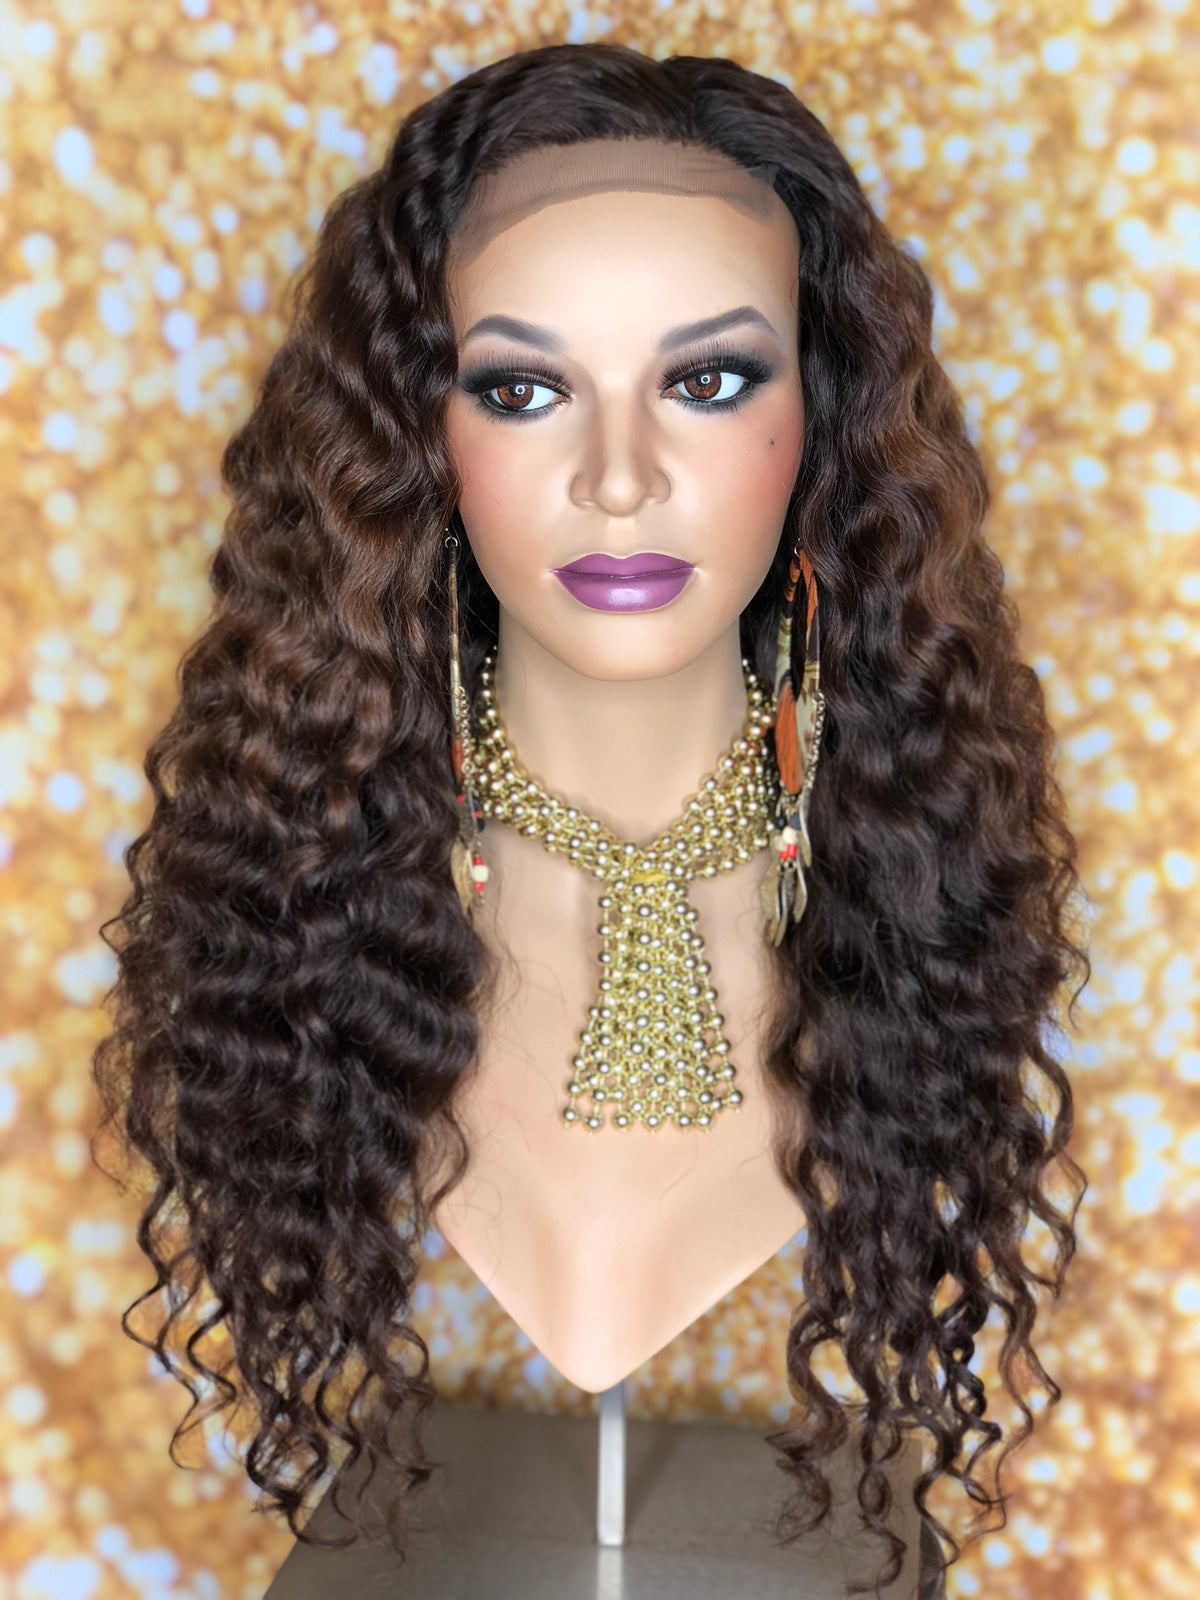 TreBella Wigs Custom Curly unit w/ lace closure unit 20in - TreBella Wigs